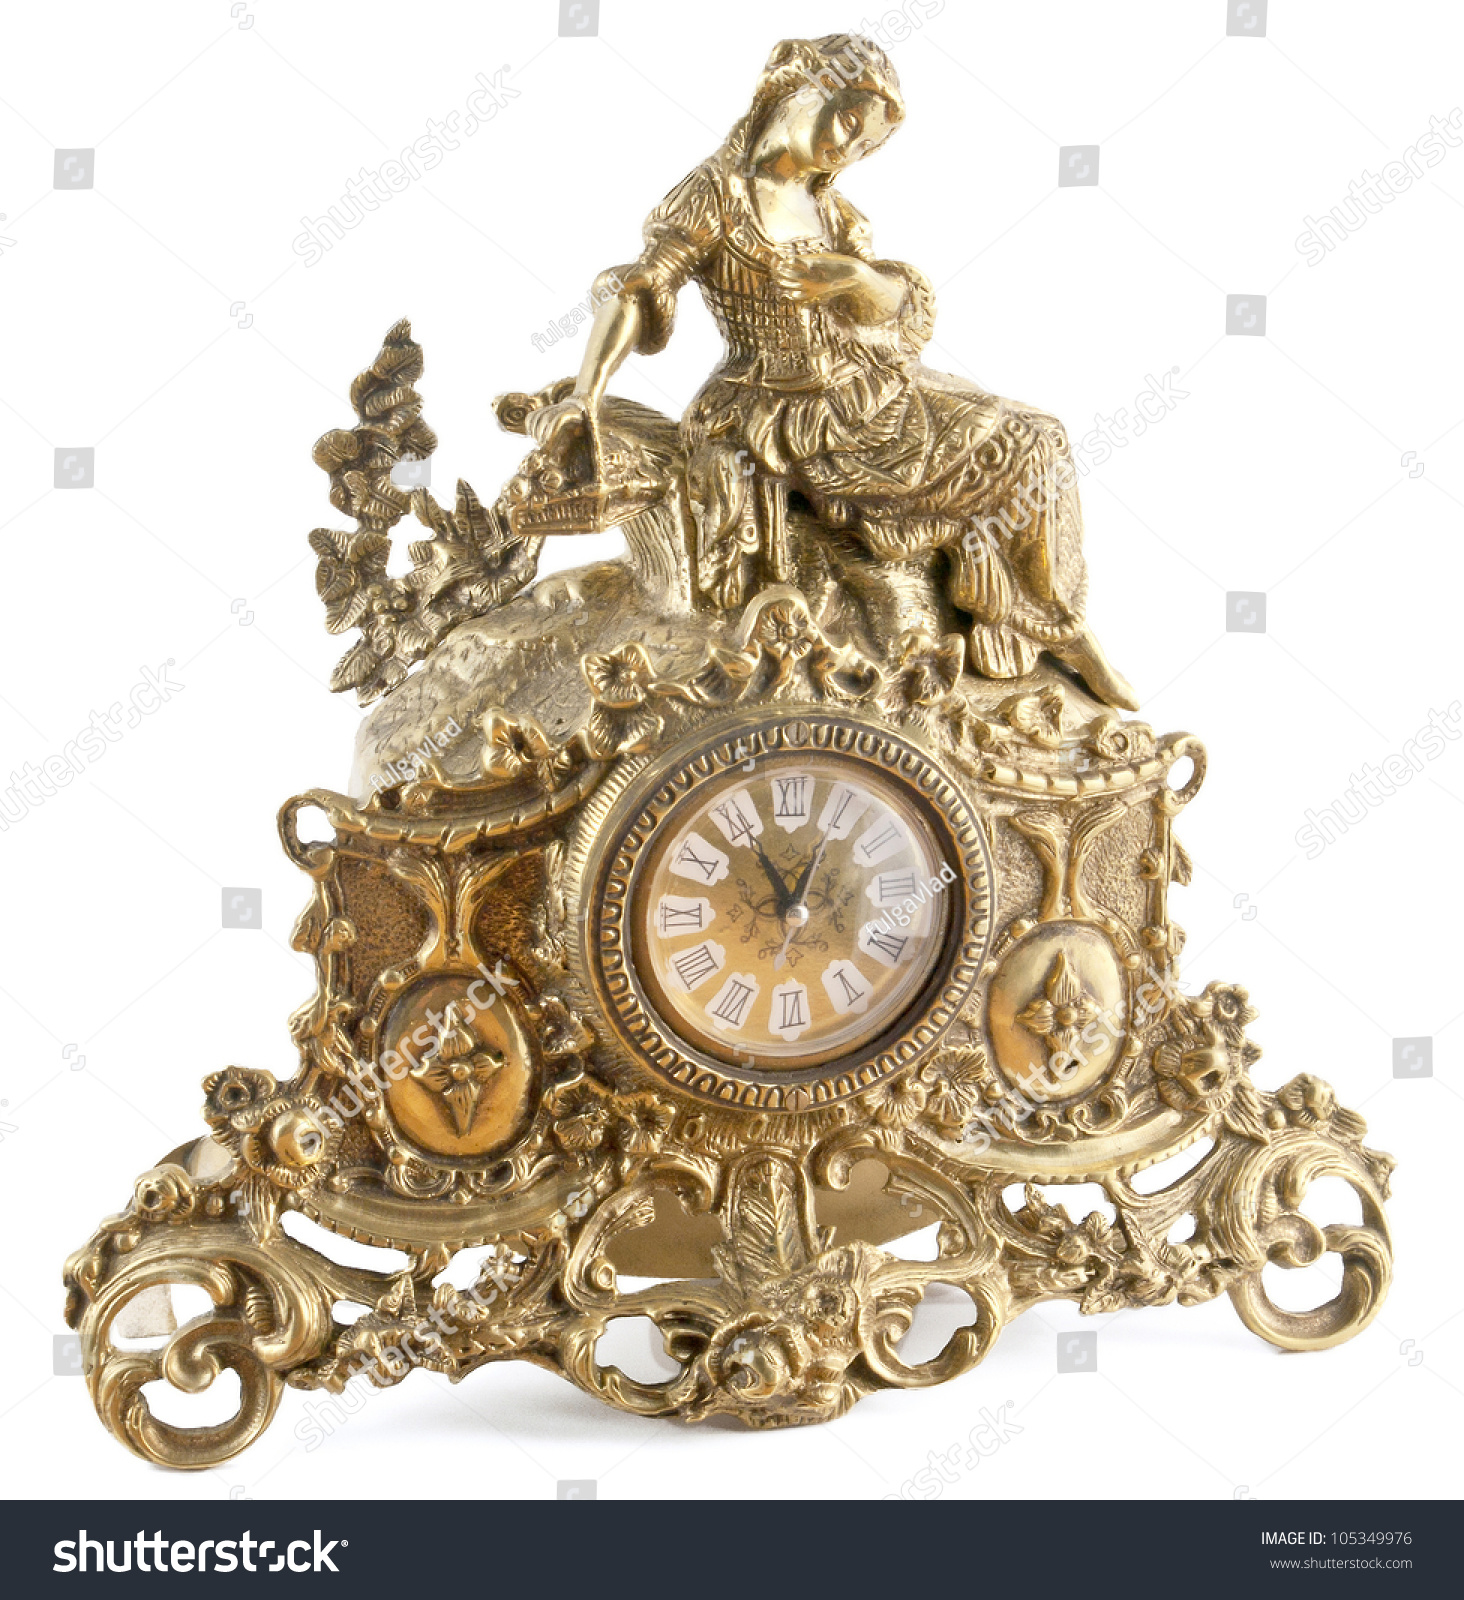 Decorative Table Clock In Bronze On A White Background